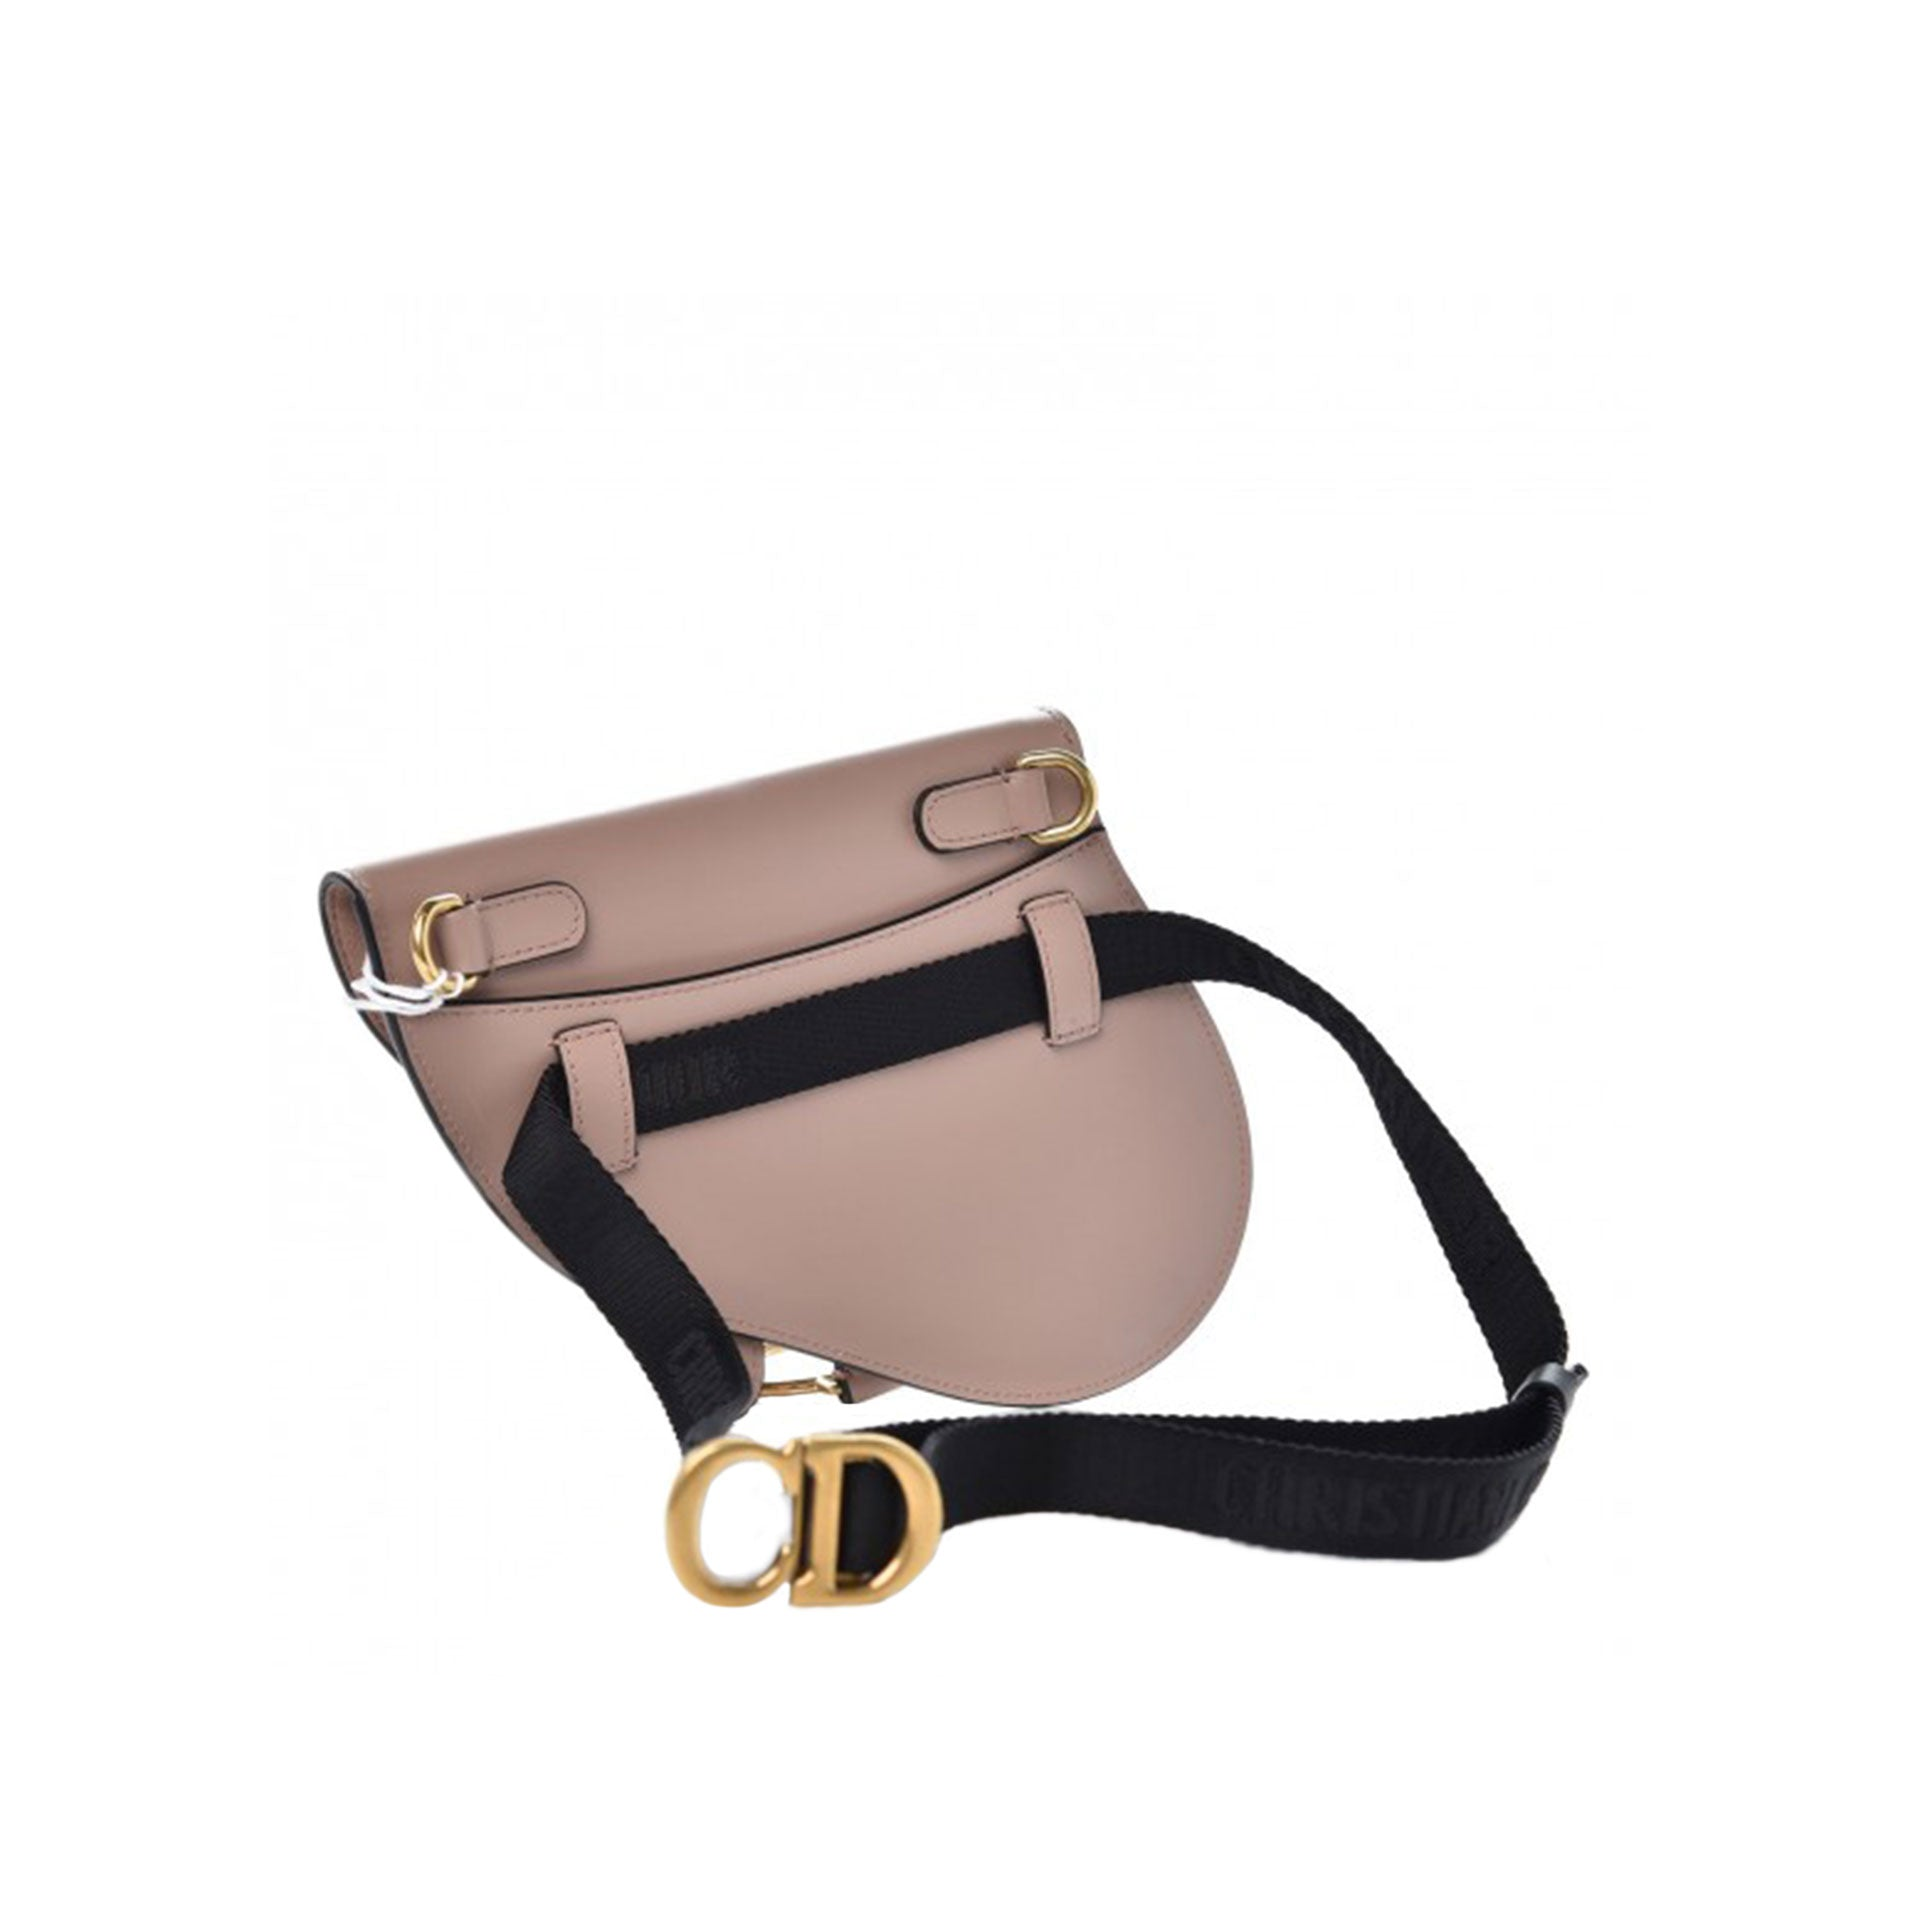 Christian Waist Belt Saddle Fanny Pack Limited Edition Blush Beige Pink Leather Cross Body Bag